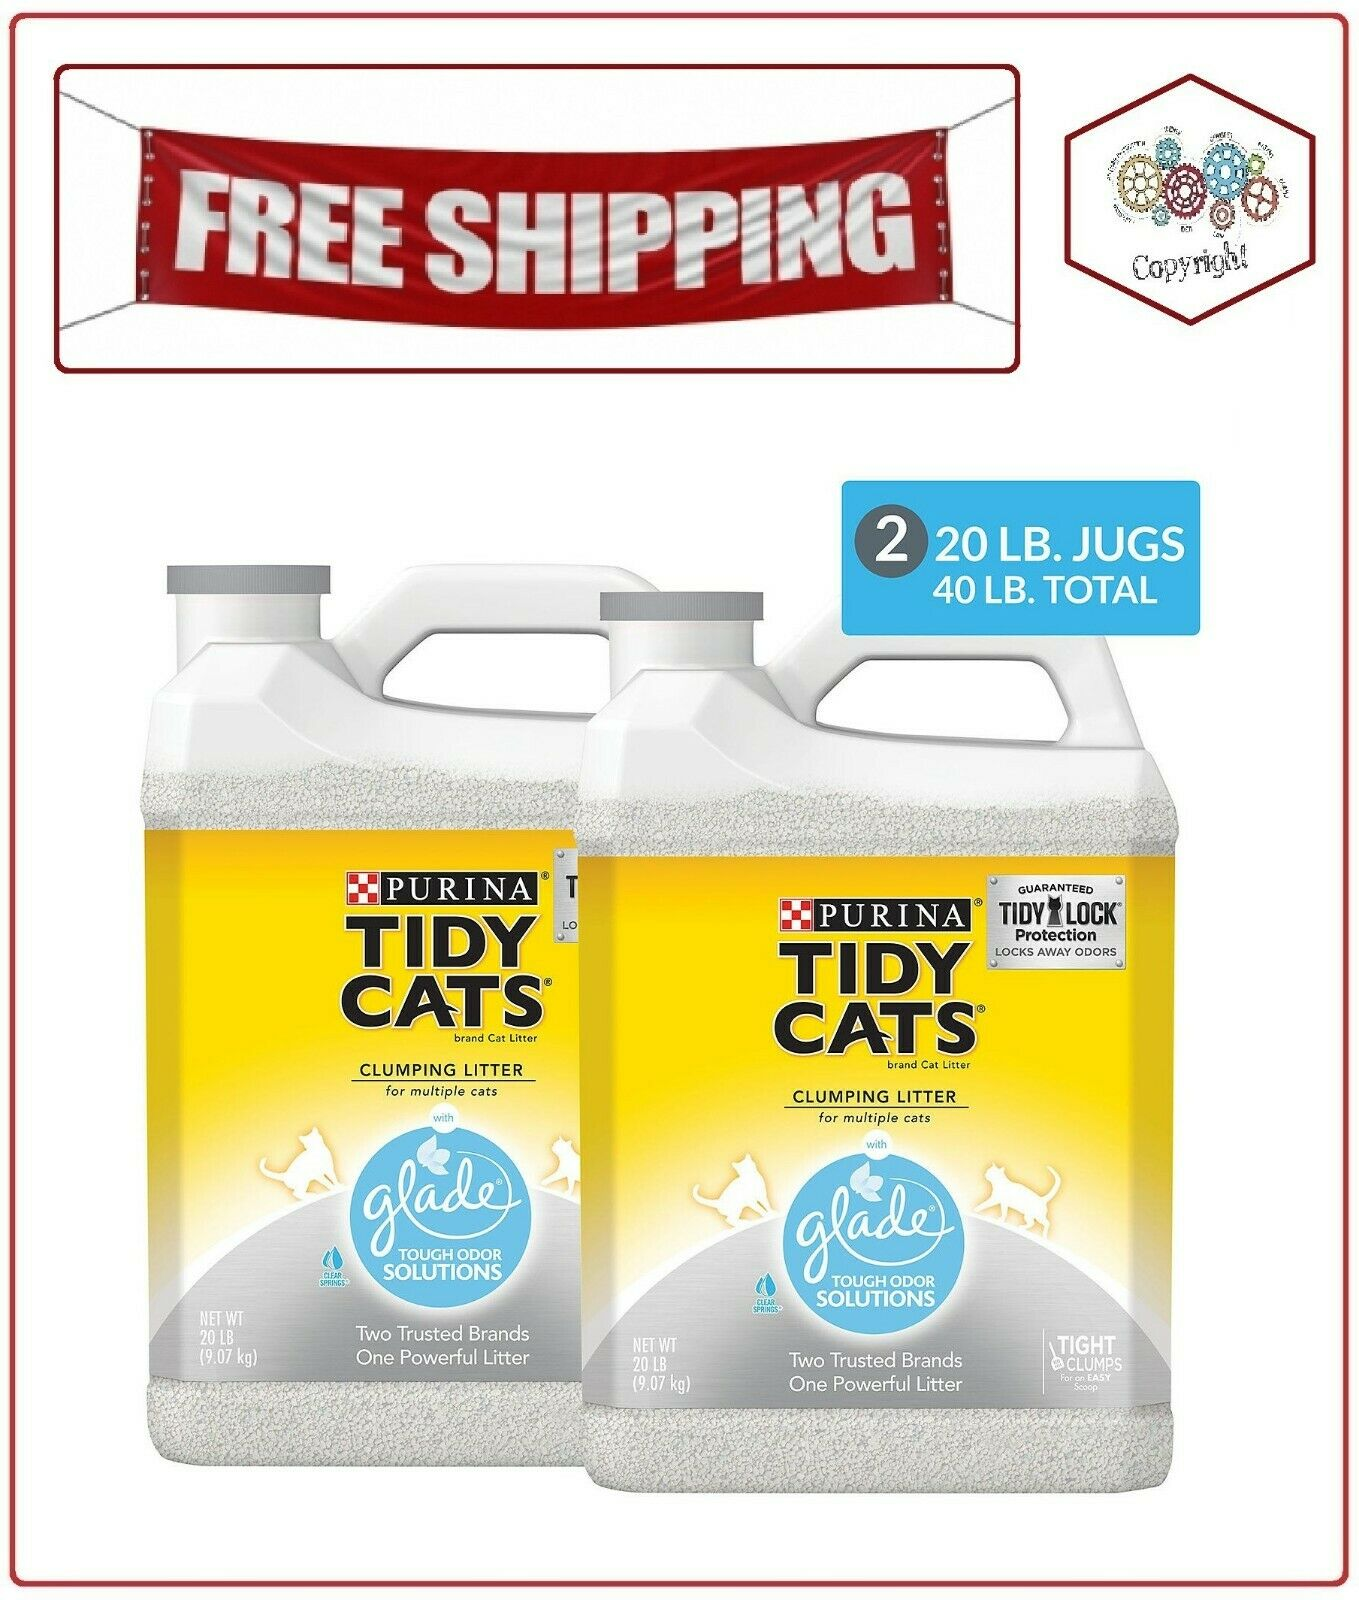 Purina Tidy Cats Clumping Litter with Glade Twin Pack 20 lb.